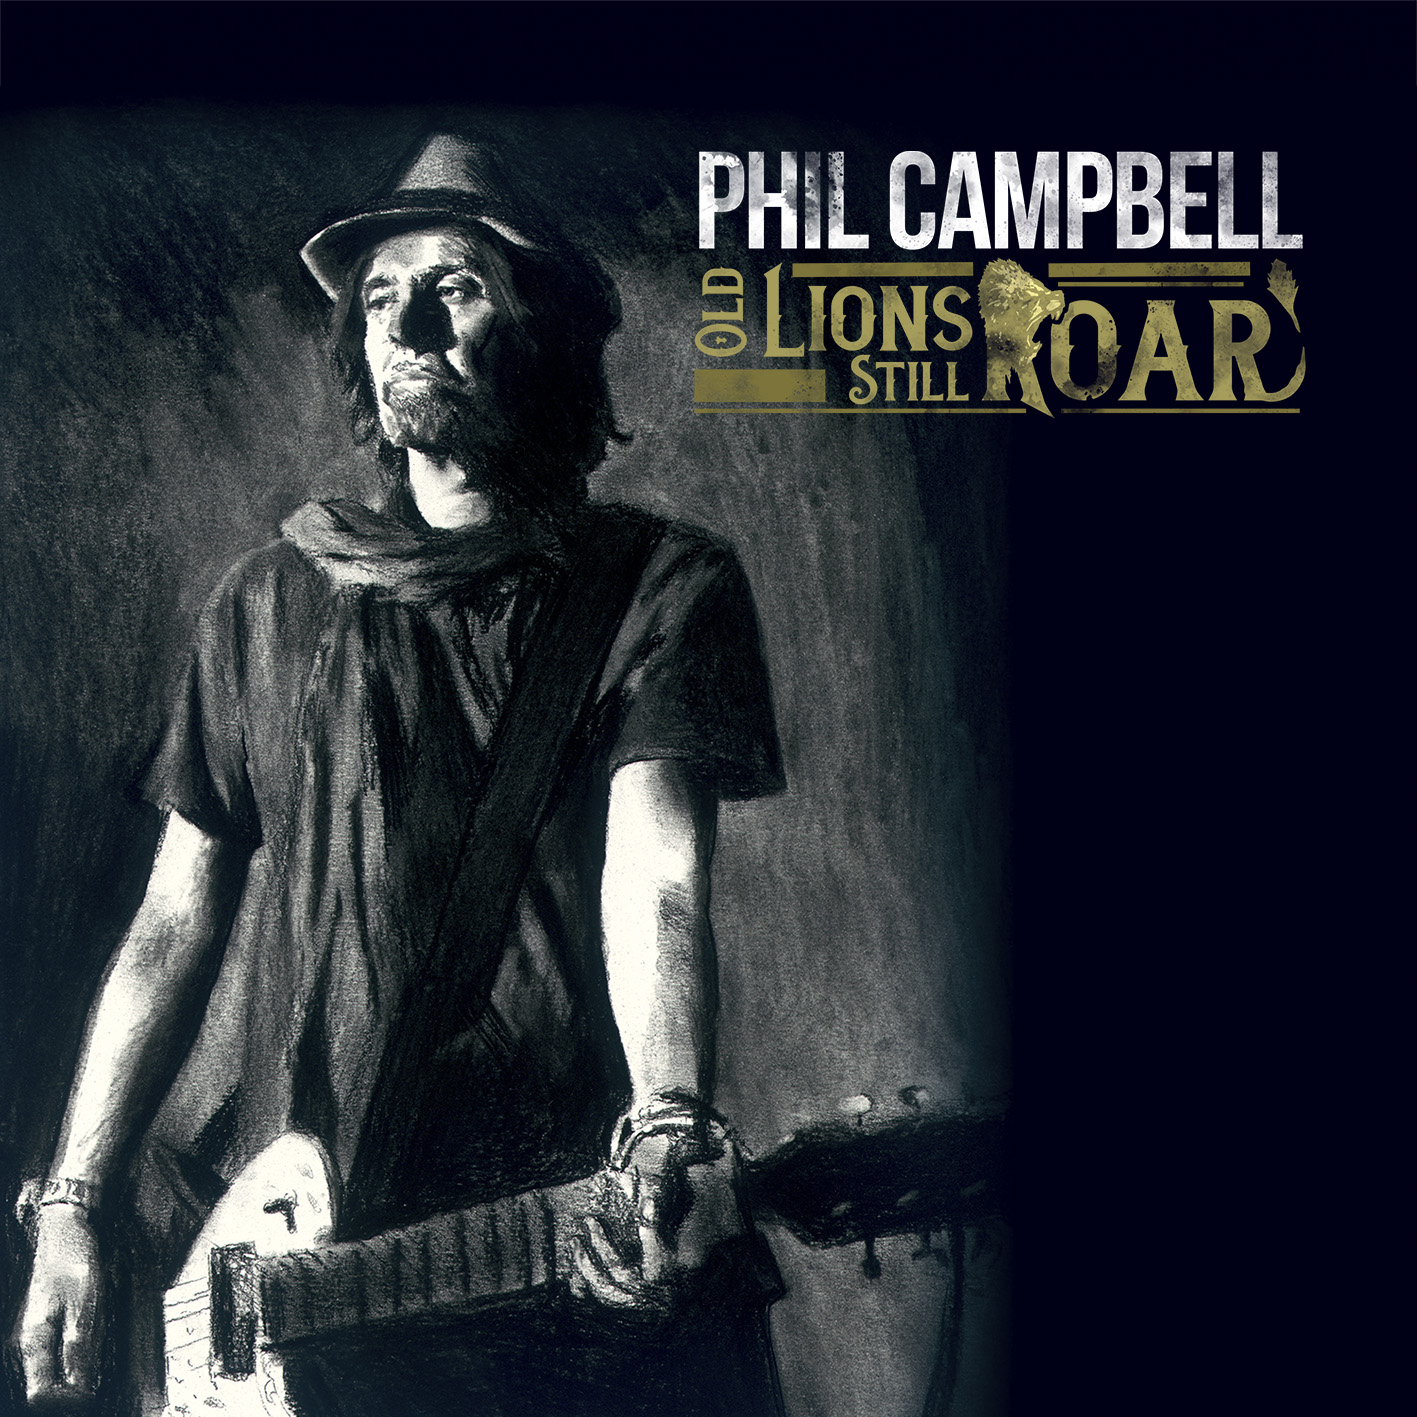 phil campbell - old lions pic 1